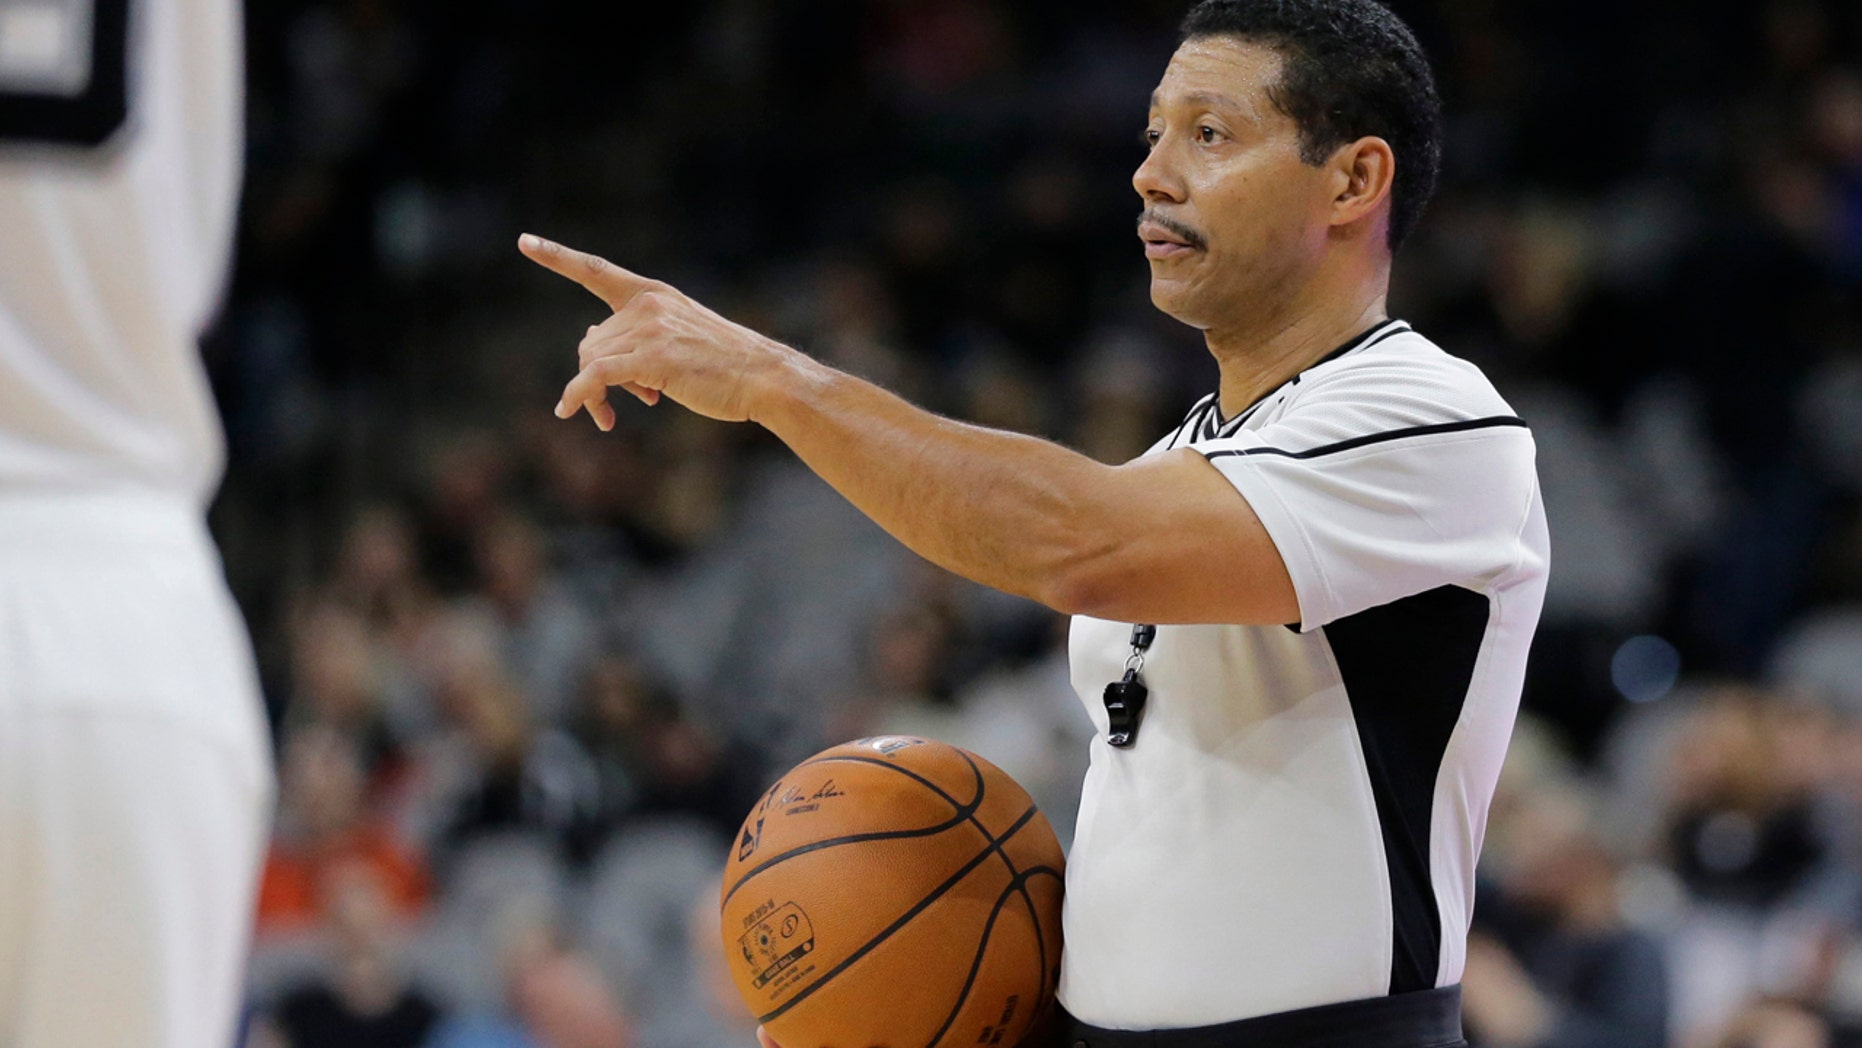 """NBA referee Bill Kennedy (55) during the second half of an NBA basketball game between the San Antonio Spurs and Utah Jazz, Monday, Dec. 14, 2015, in San Antonio. Kennedy has told Yahoo Sports he is gay after Sacramento Kings guard Rajon Rondo directed a gay slur at him during a game. Kennedy tells Yahoo he is """"proud to be an NBA referee and I am proud to be a gay man,"""" adding that he chose to come out in hopes of sending a message """"that you must allow no one to make you feel ashamed of who you are."""" (AP Photo/Eric Gay)"""